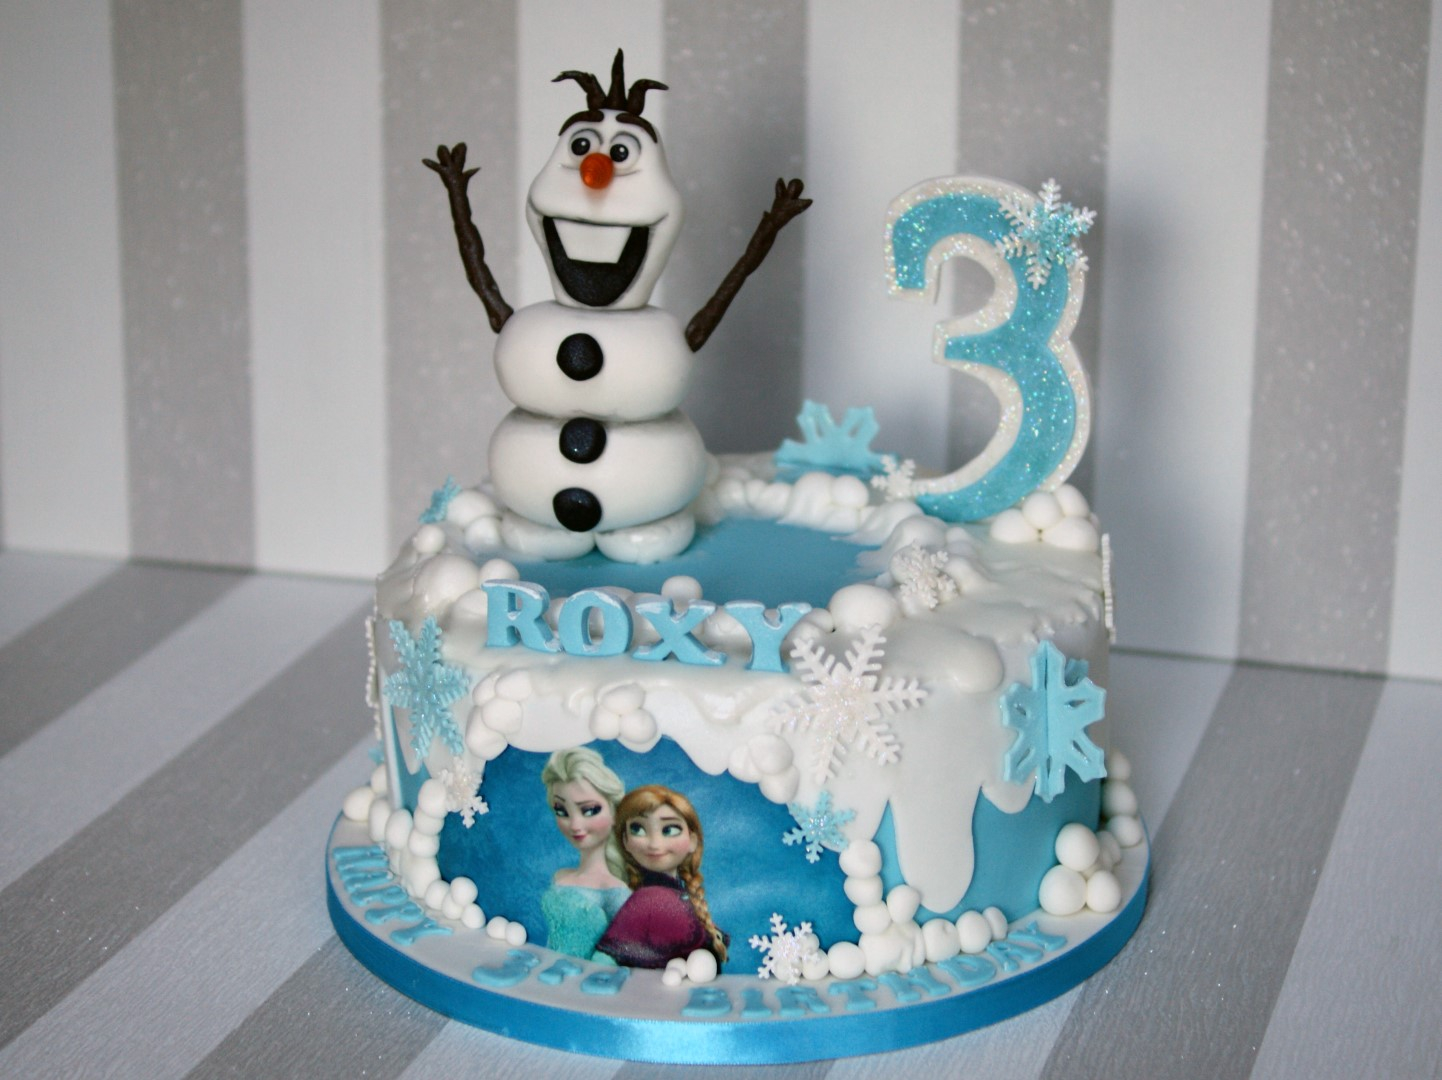 Elsa Birthday Cakes Disney Frozen Cake Olaf And Elsa Birthday Cake Bakealous